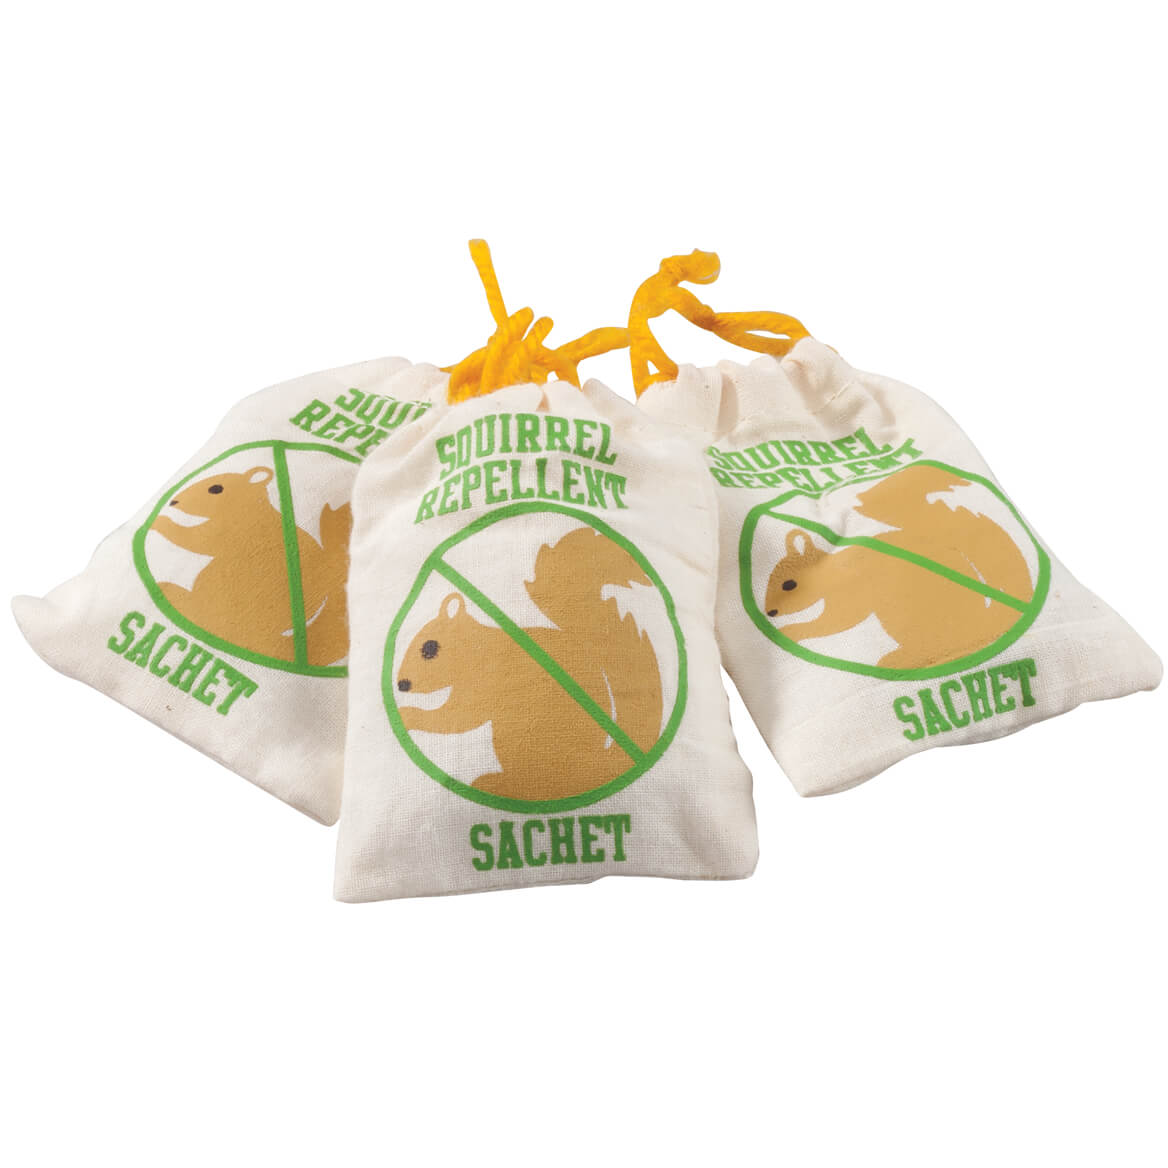 Squirrel Chasers, Set of 3